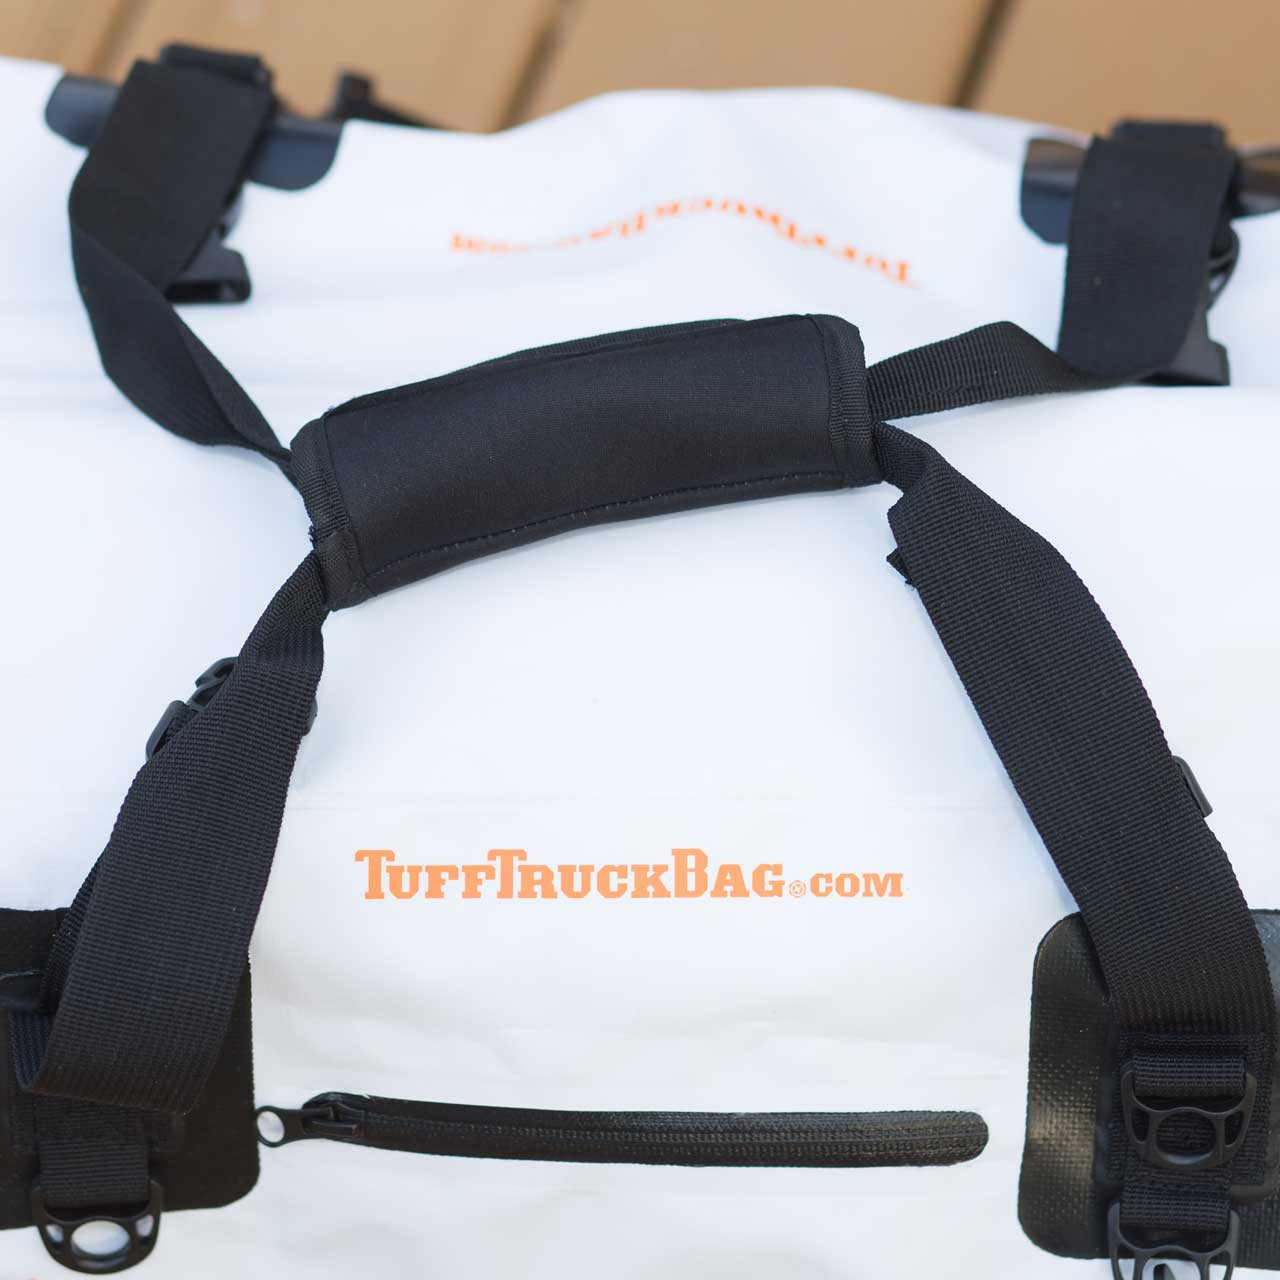 Top view of the handle and grip to fasten and carry the bag